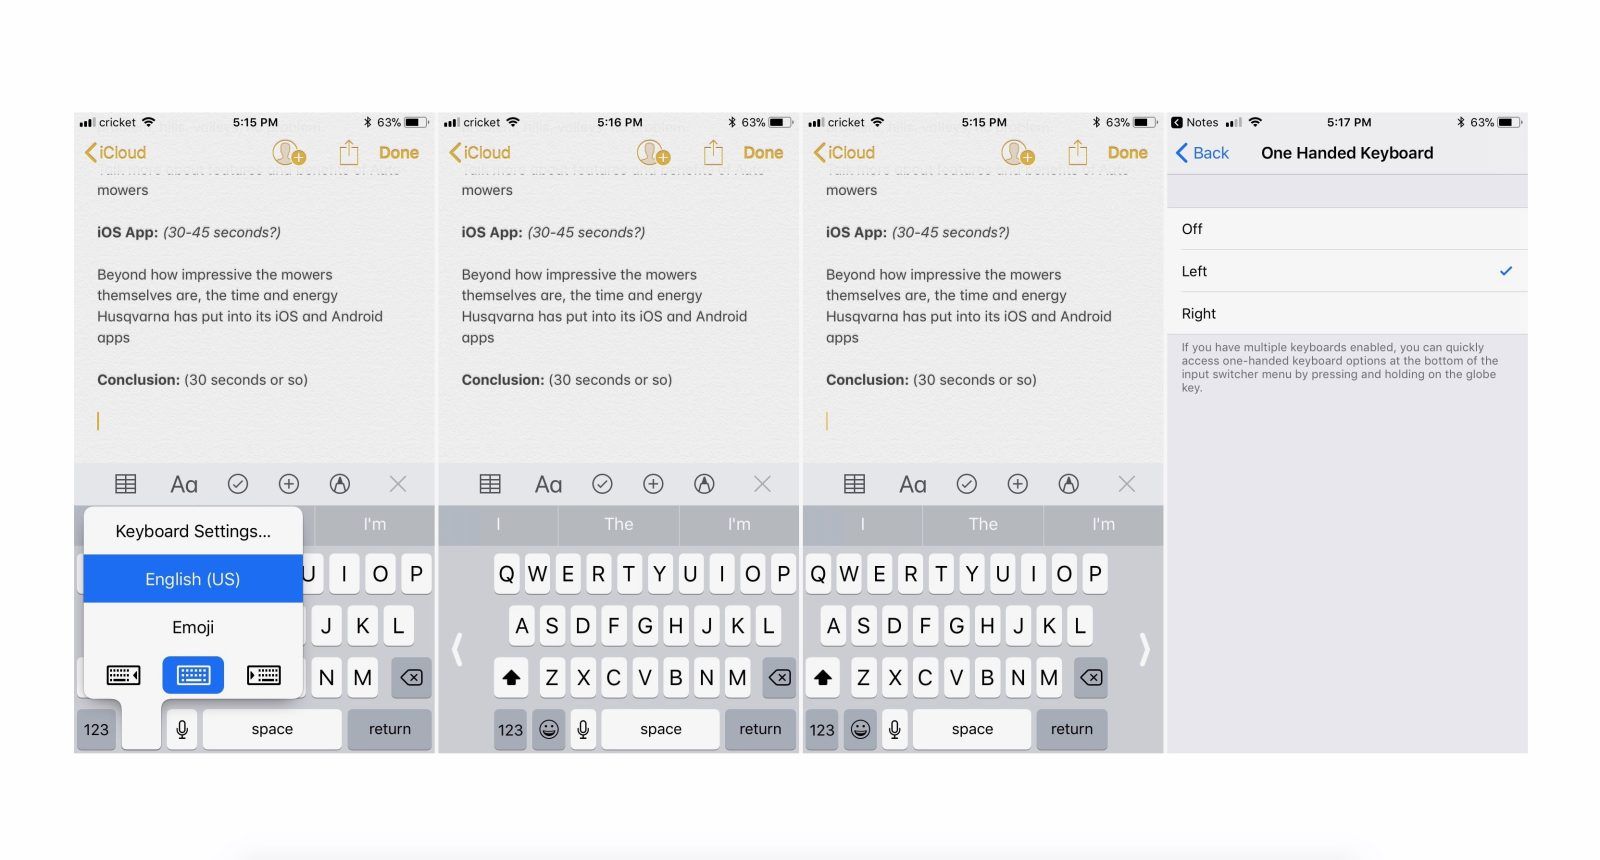 iOS 11: How to use the one handed keyboard - 9to5Mac